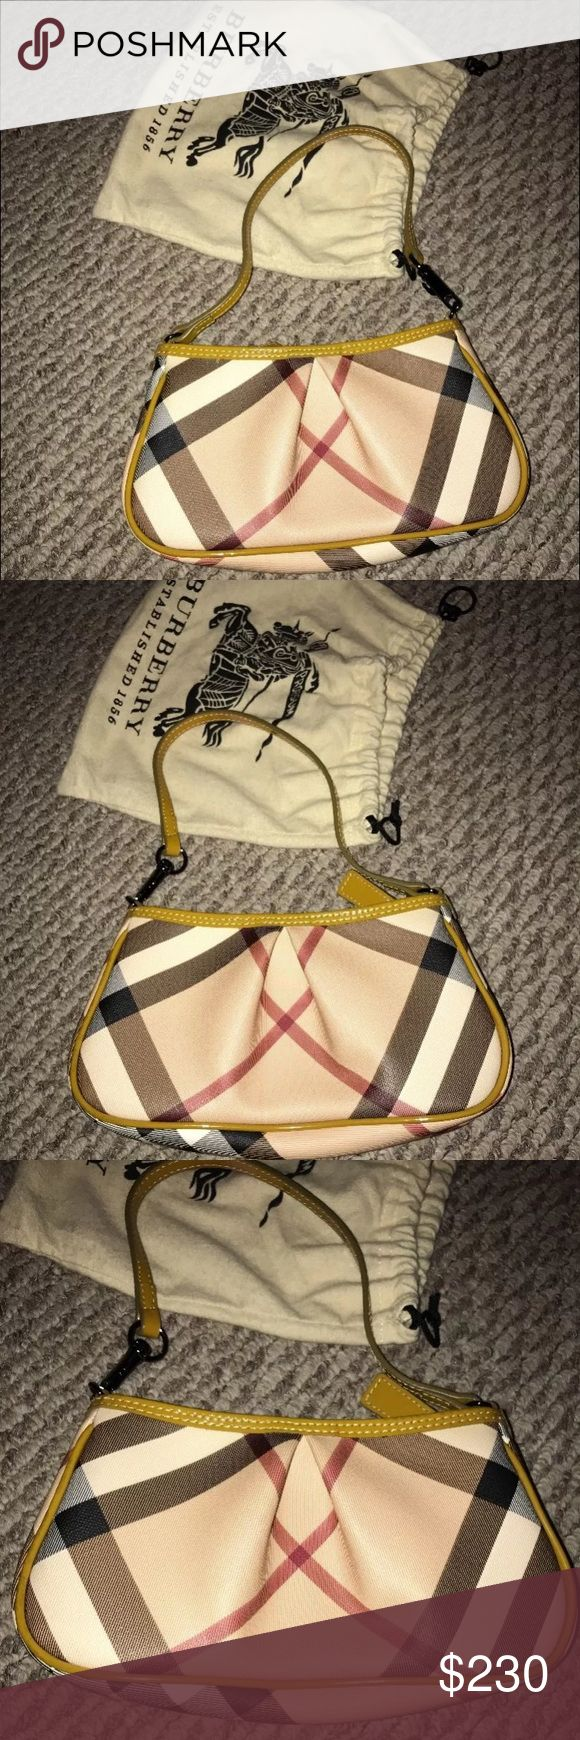 Authentic Burberry Bag🔥 Like new burberry bag. Only used a few times in excellent condition. Comes with dust bag Burberry Bags Shoulder Bags